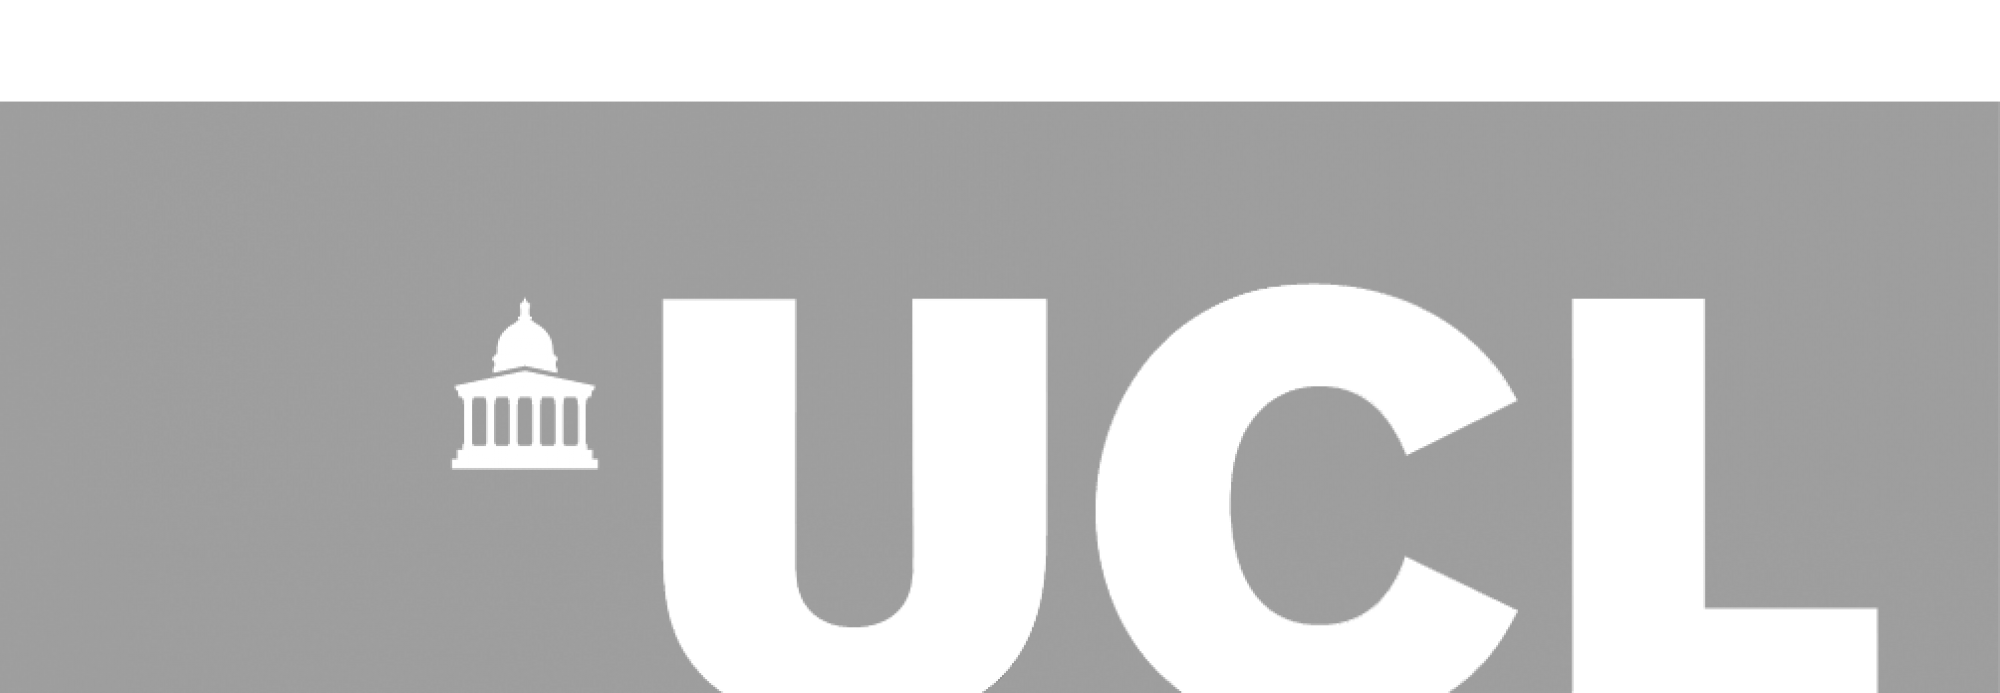 cropped-ucl-home.png